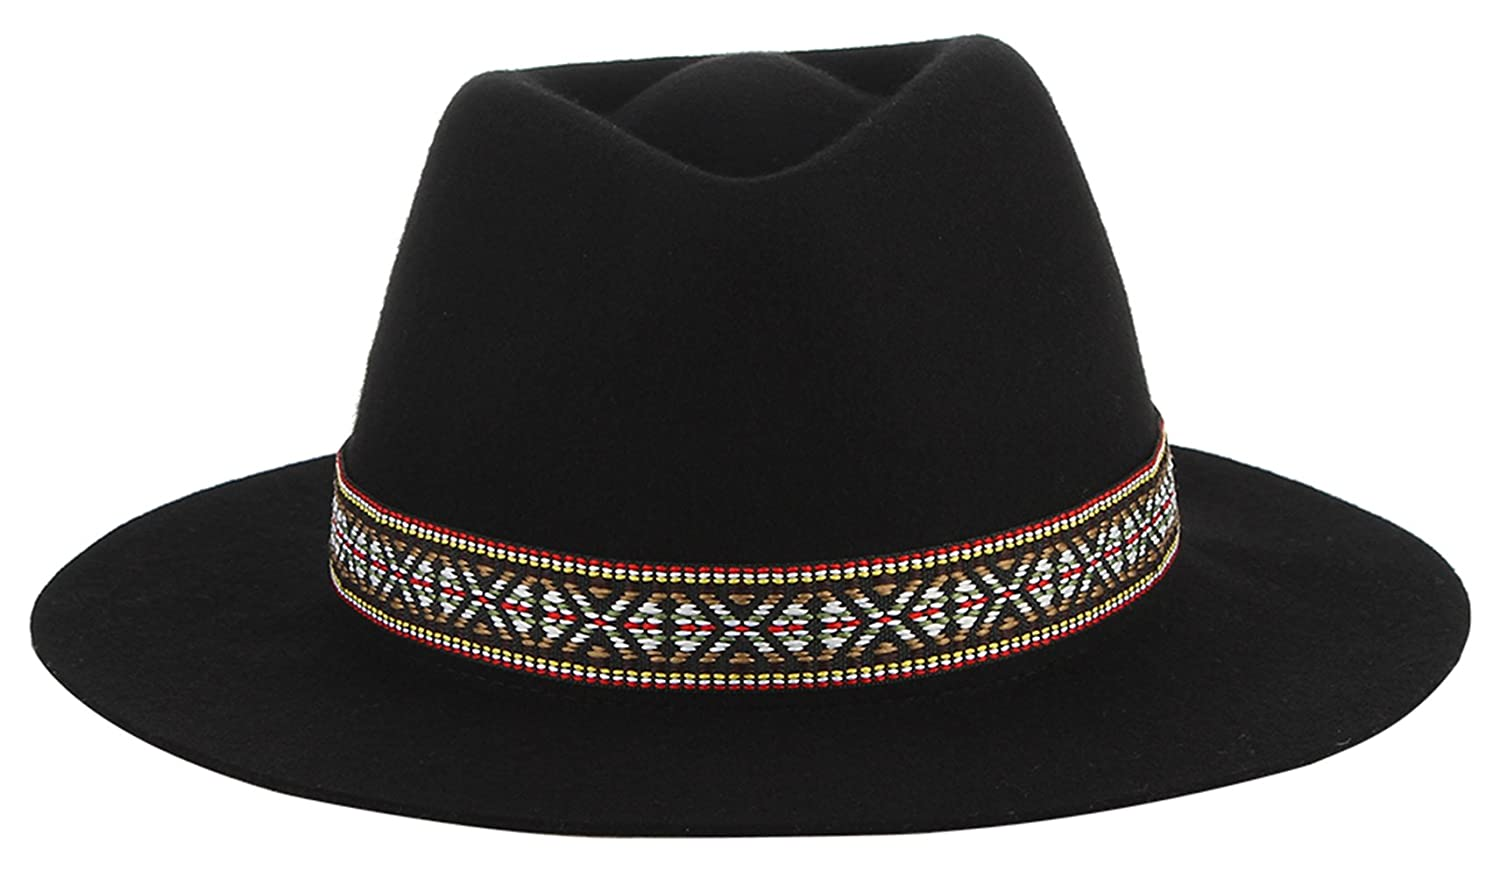 Gemvie Womens Wool Felt Tribal Printed Band Gangster Trilby Dent Fedora Hat Black at Amazon Womens Clothing store: